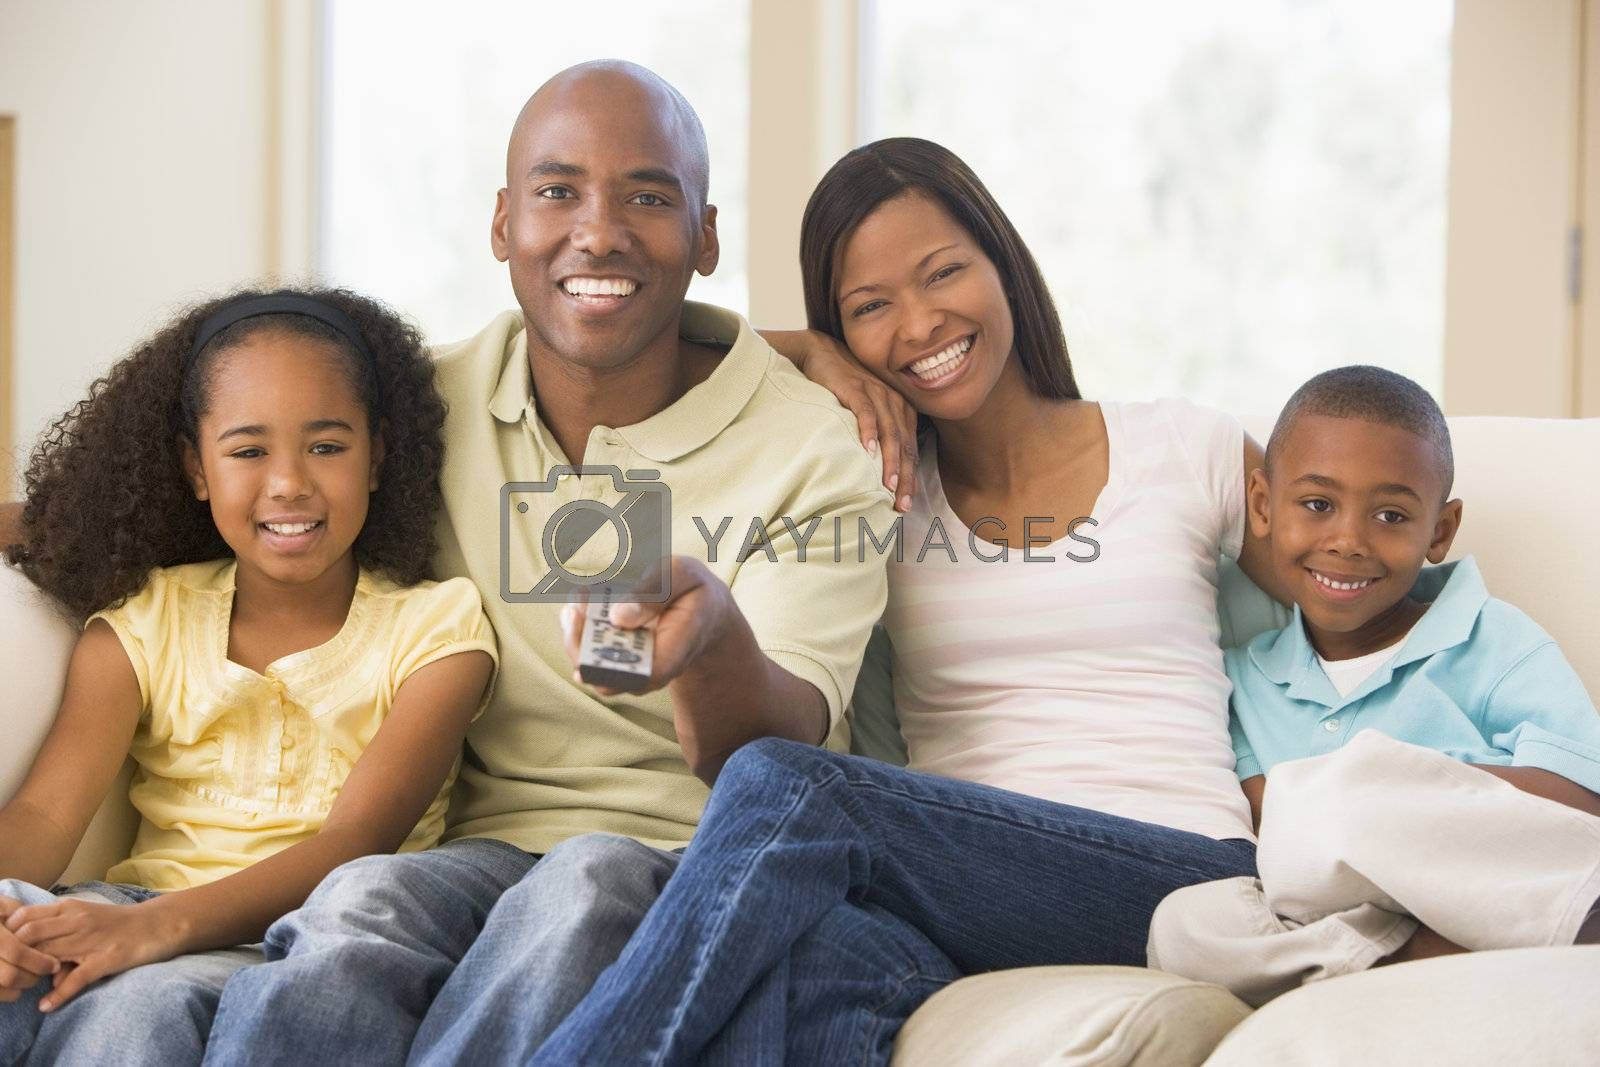 Family sitting in living room with remote control smiling by MonkeyBusiness